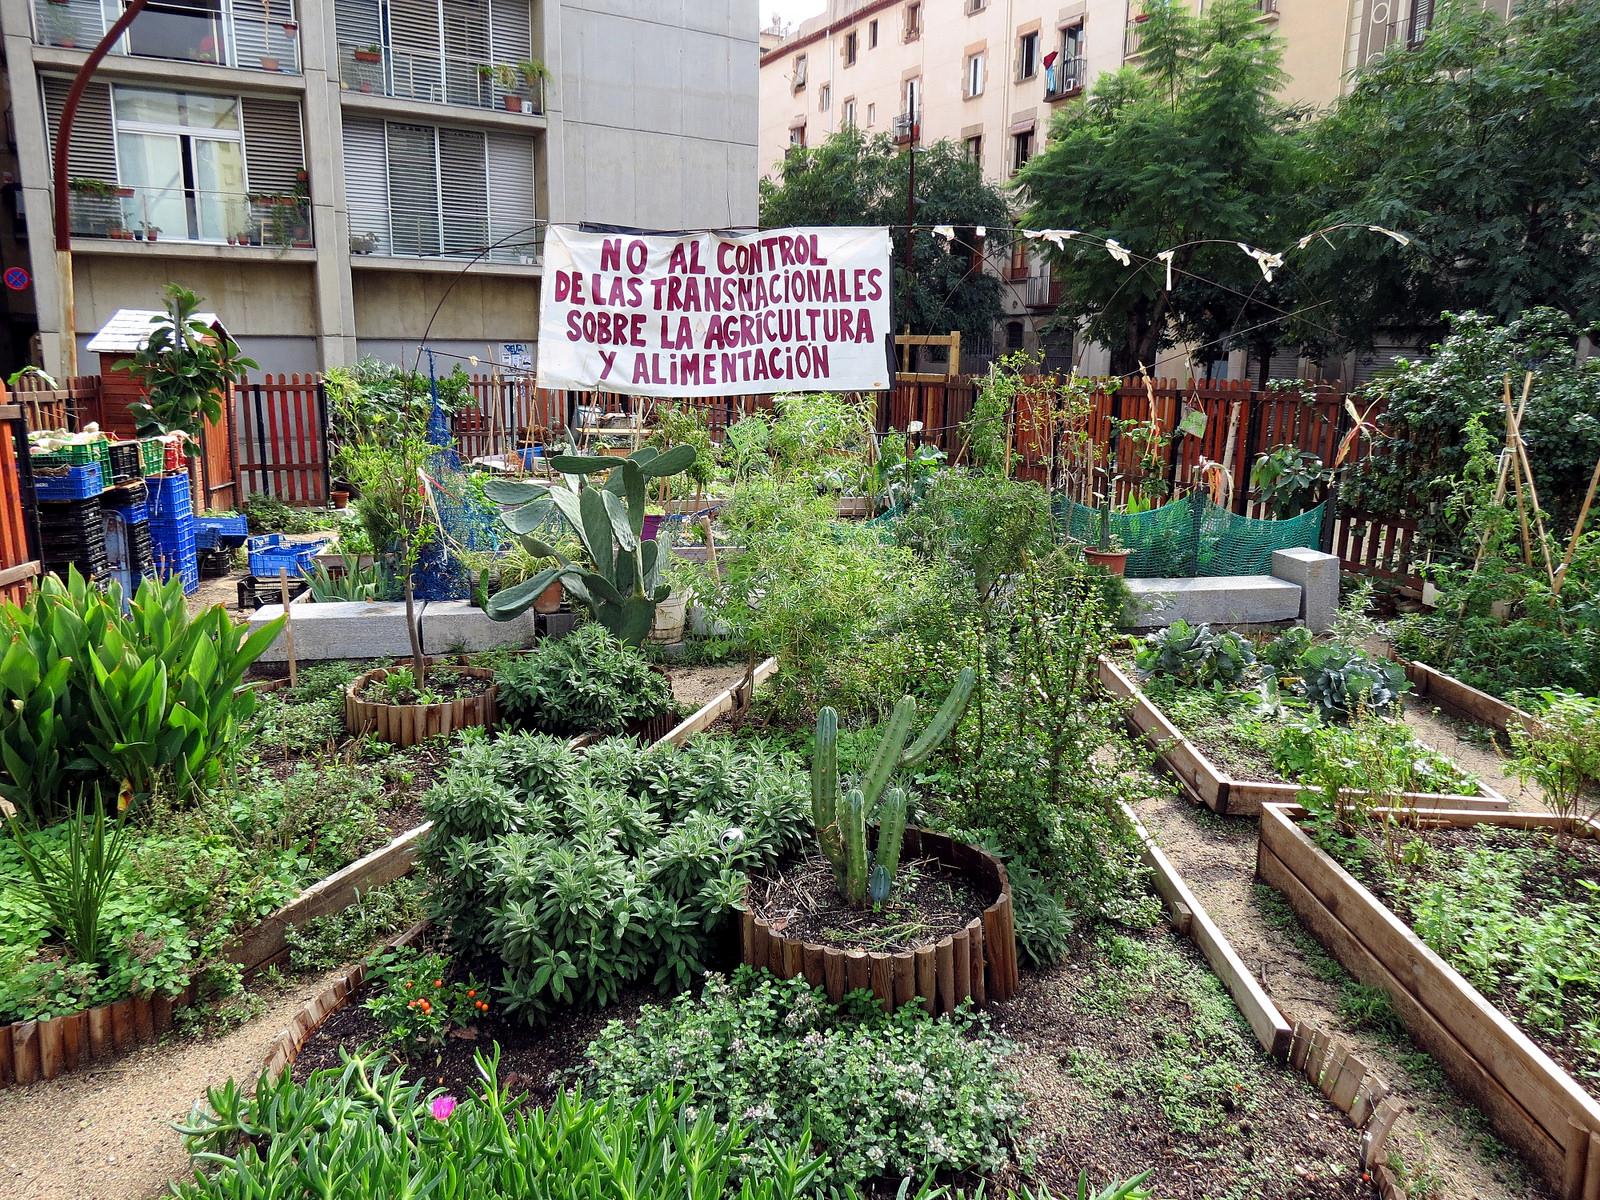 "<a href=""https://www.flickr.com/photos/31290193@N06/8294935047/"">A community garden in Barcelona © Justin Pickard/Flickr</a>"